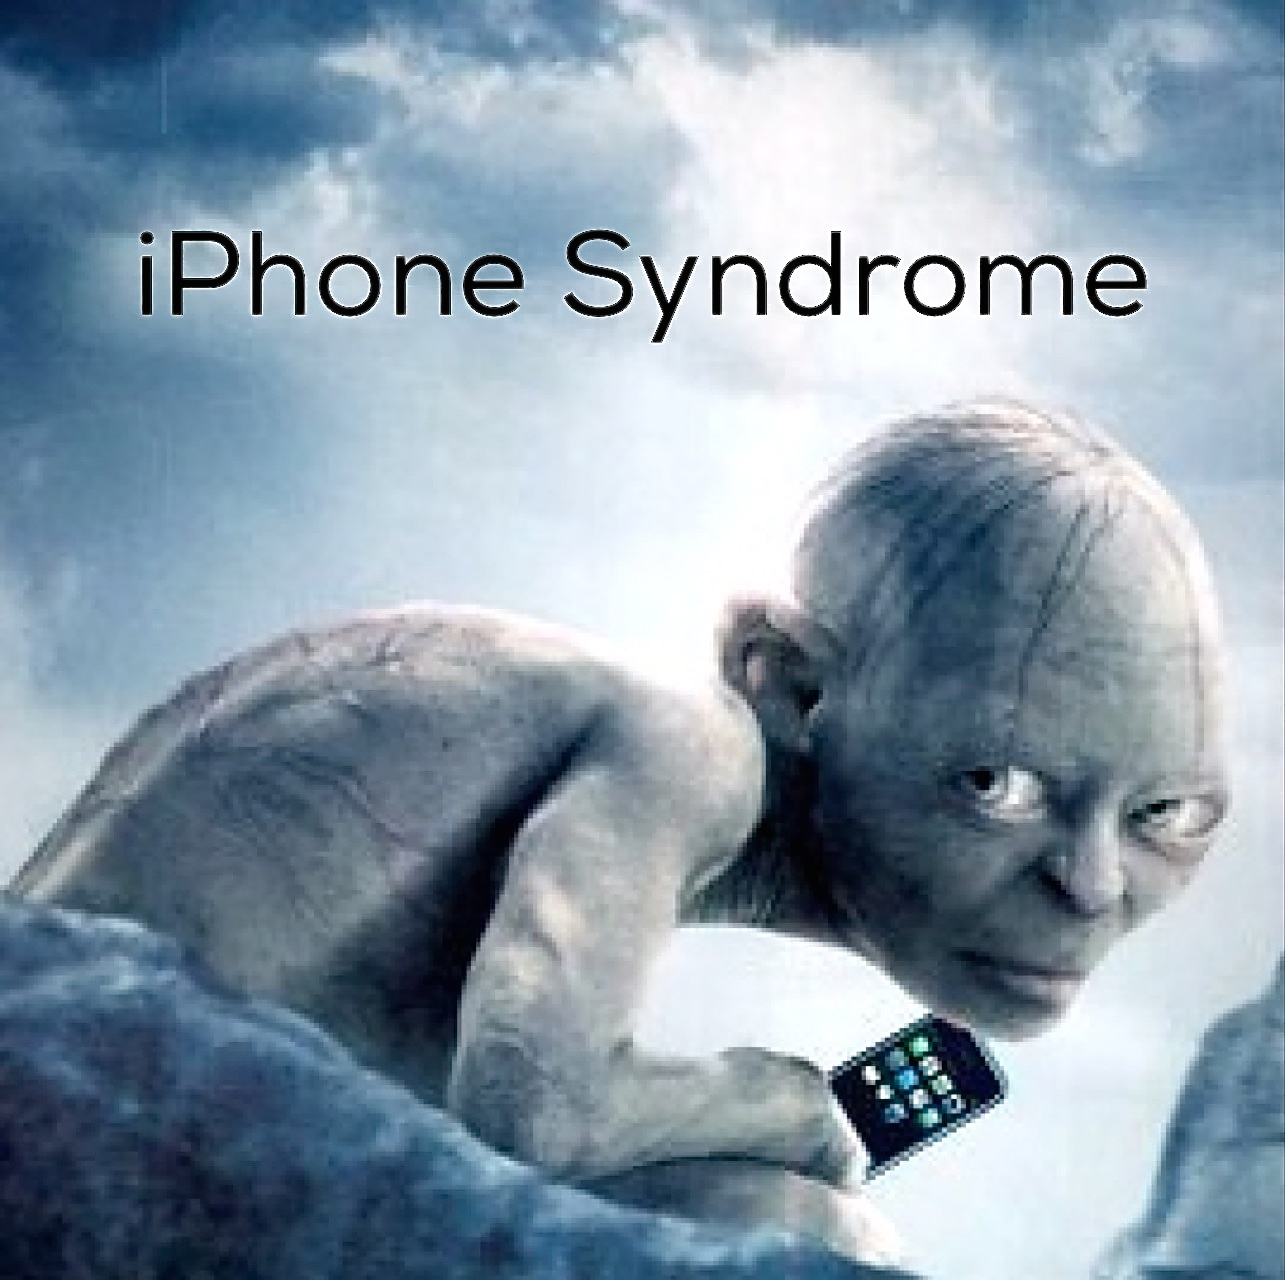 iPhone Syndrome - Posture Epidemic